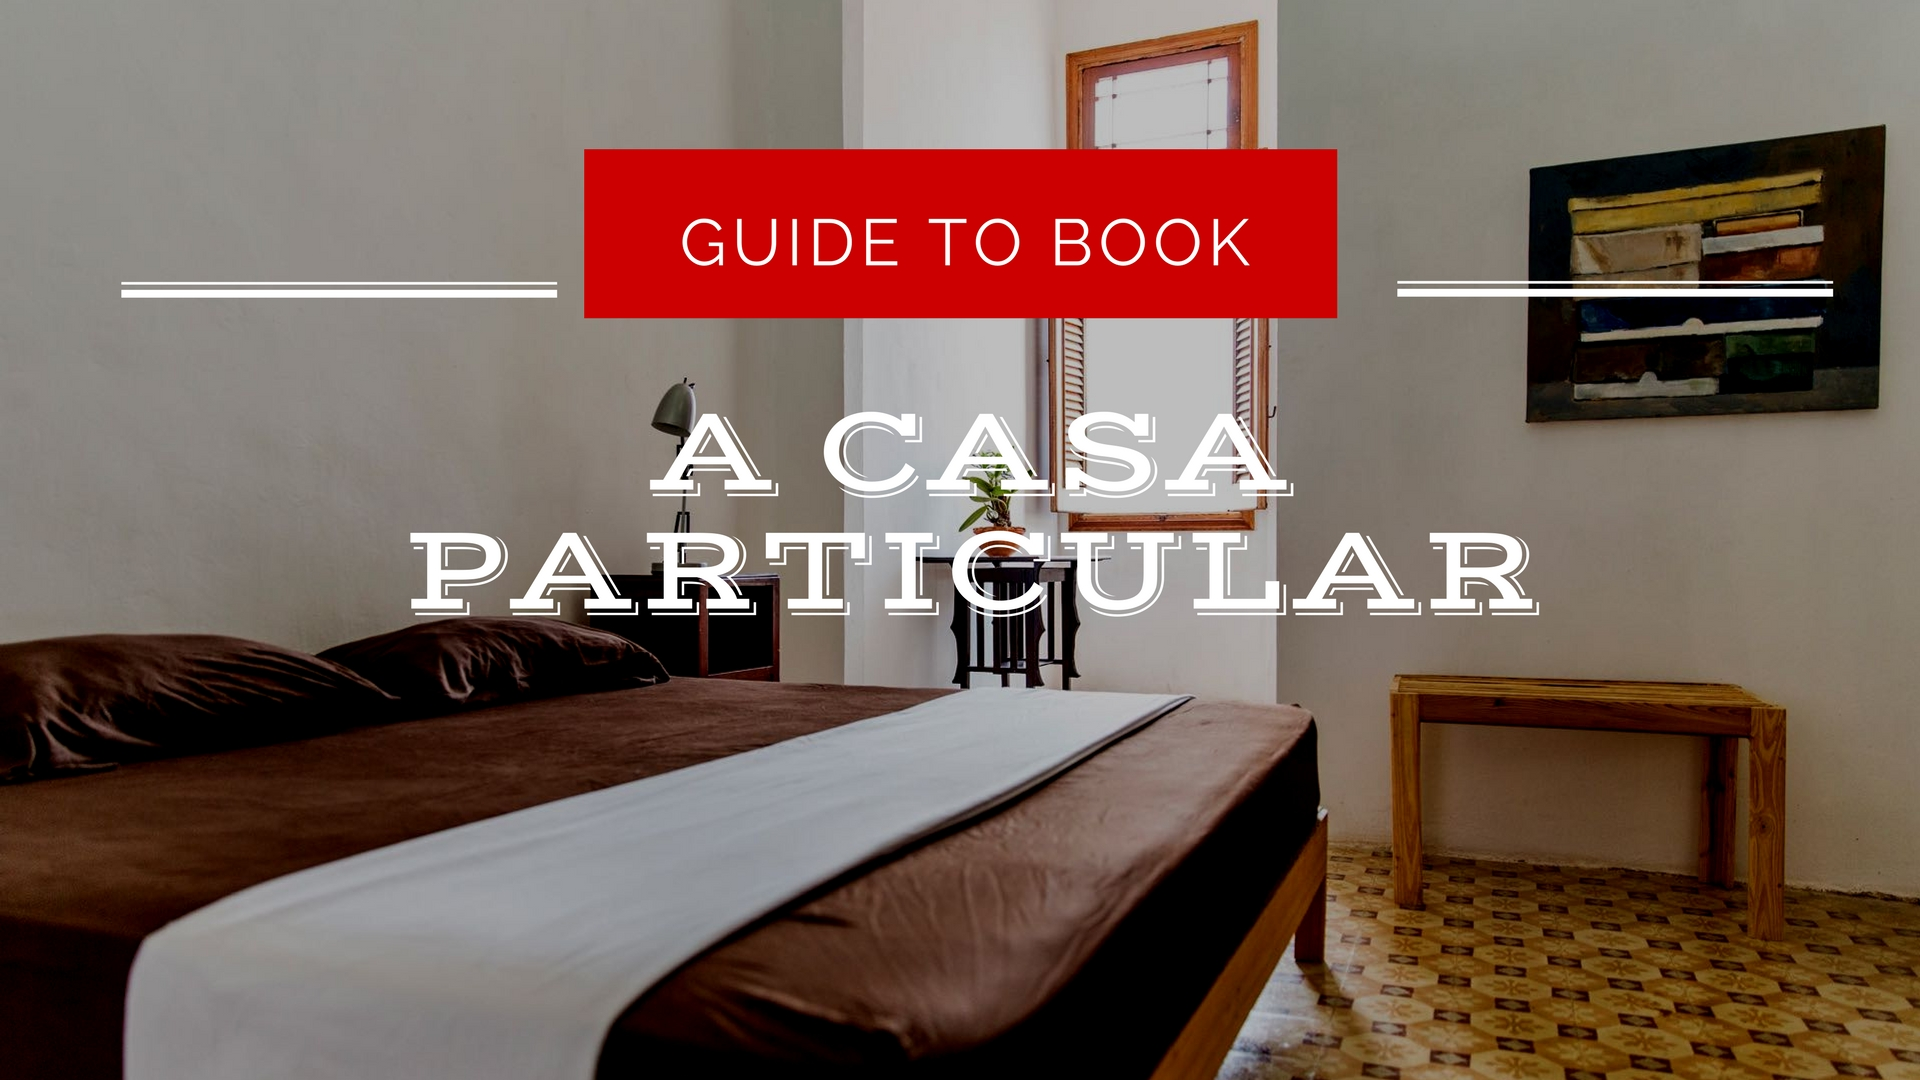 Complete guide to booking a casa particular in cuba for Booking casas